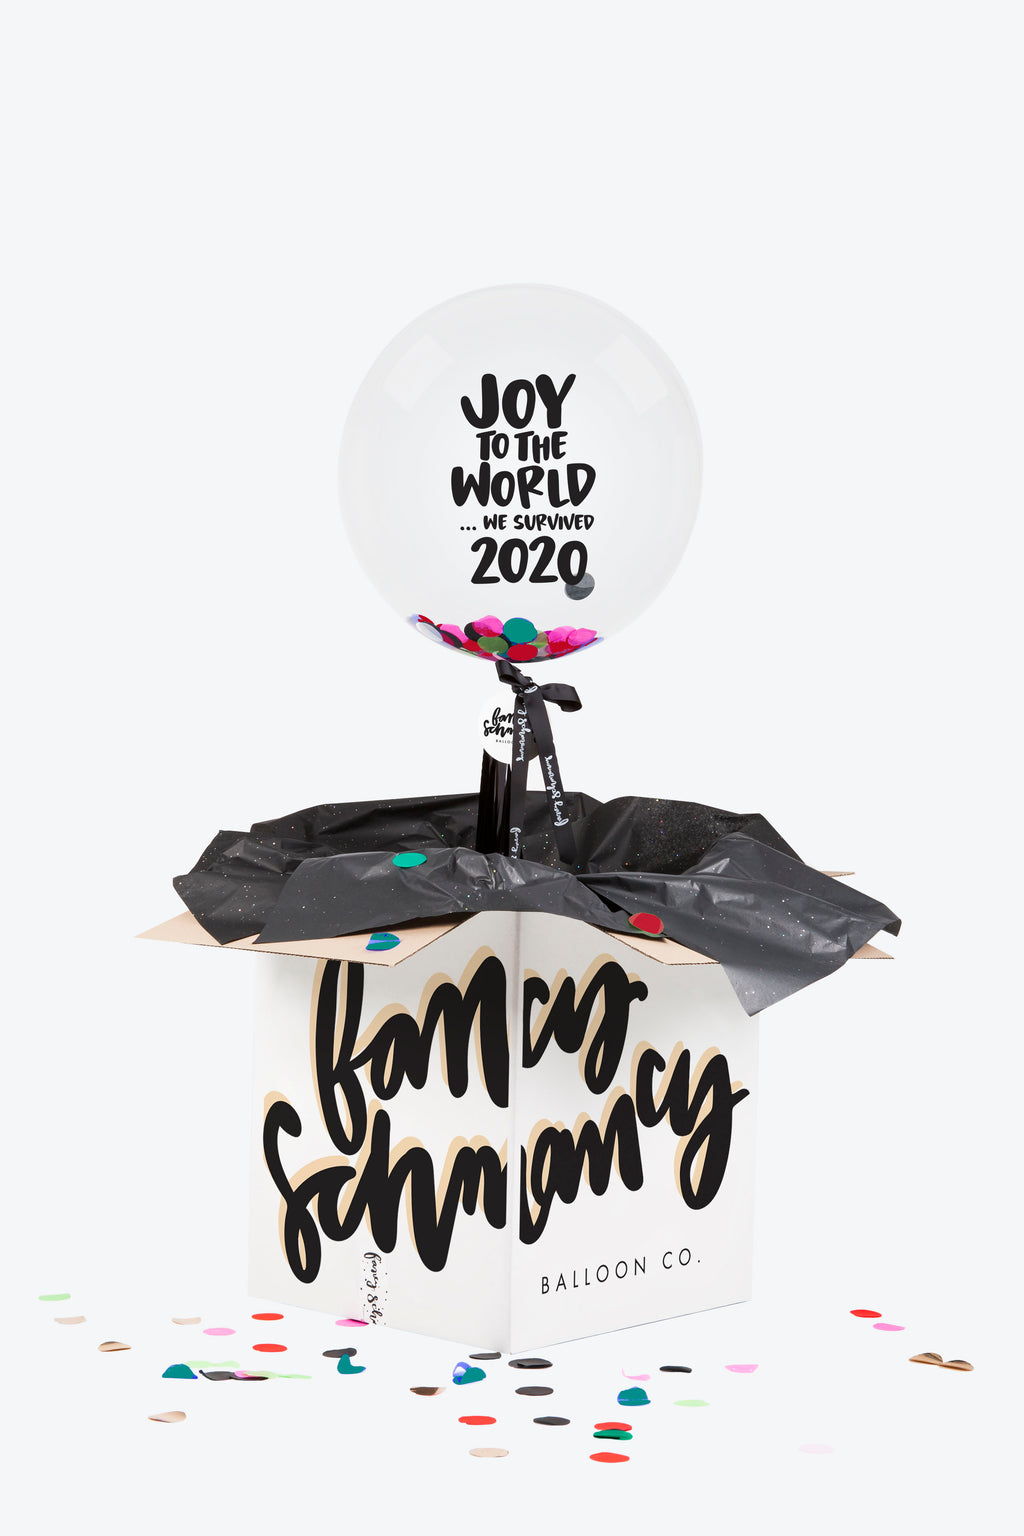 Joy to the World... we survived 2020!